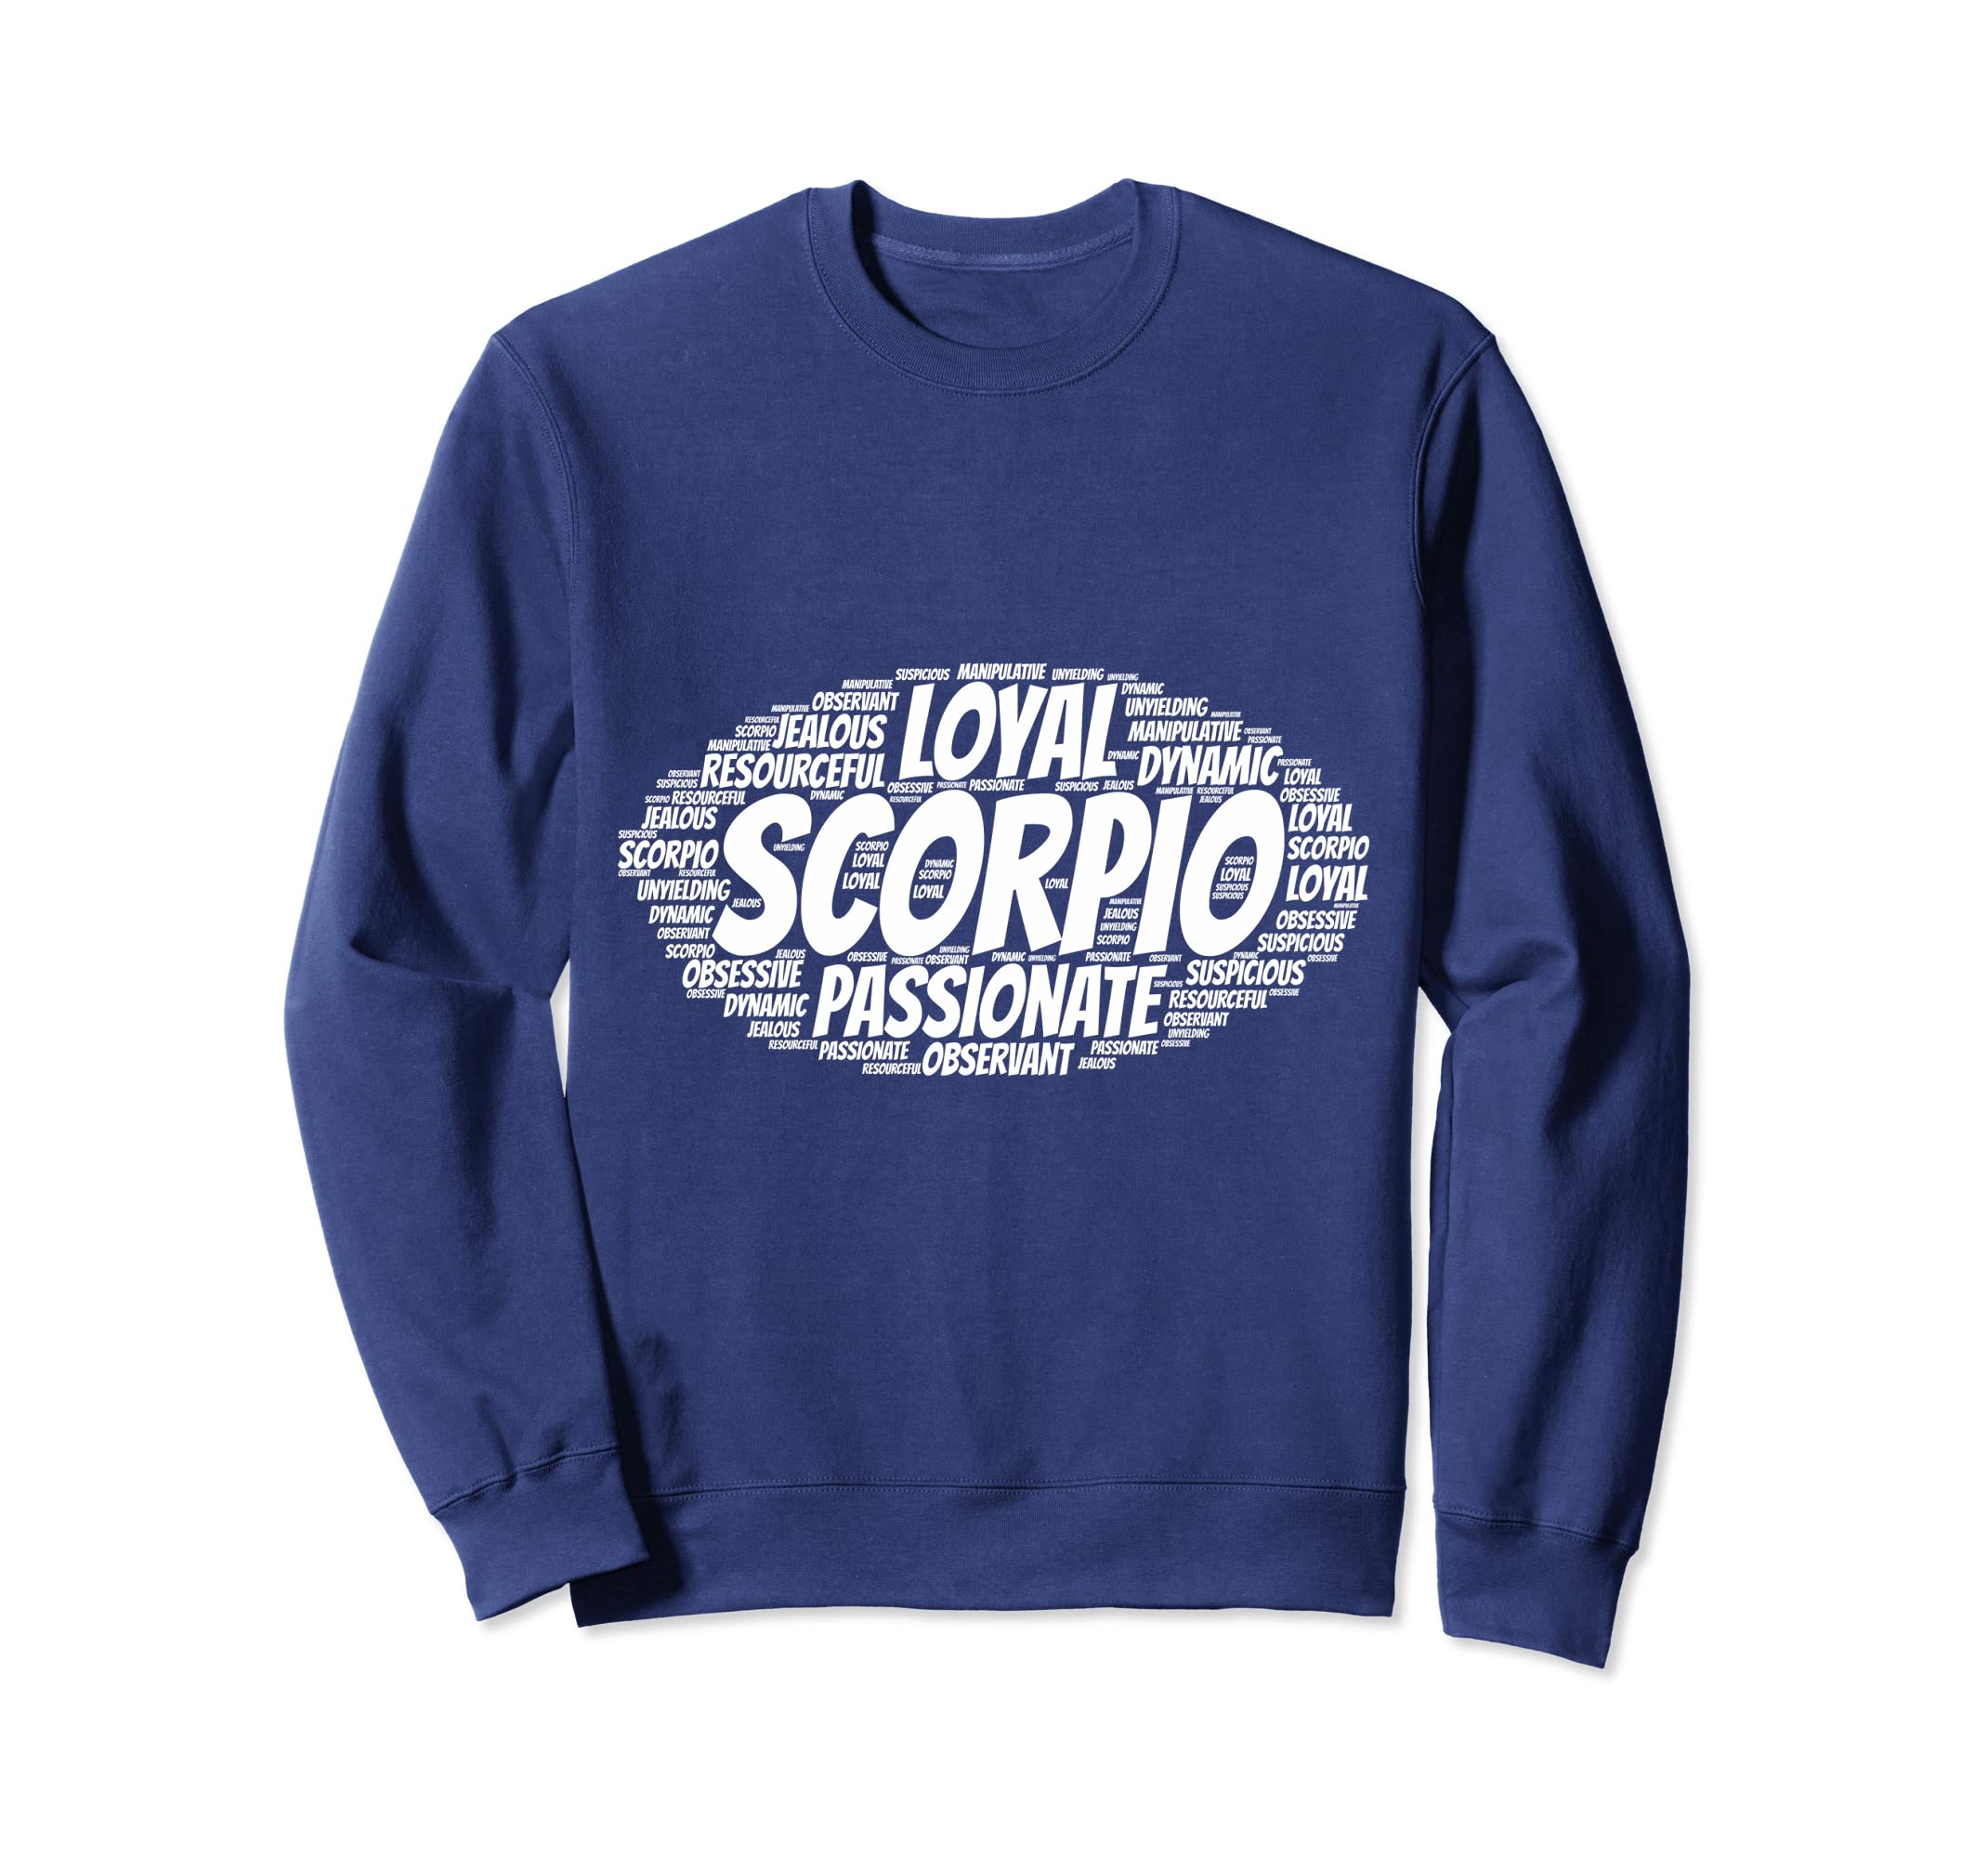 Amazon com: Scorpio horoscope daily weekly & monthly pullover T